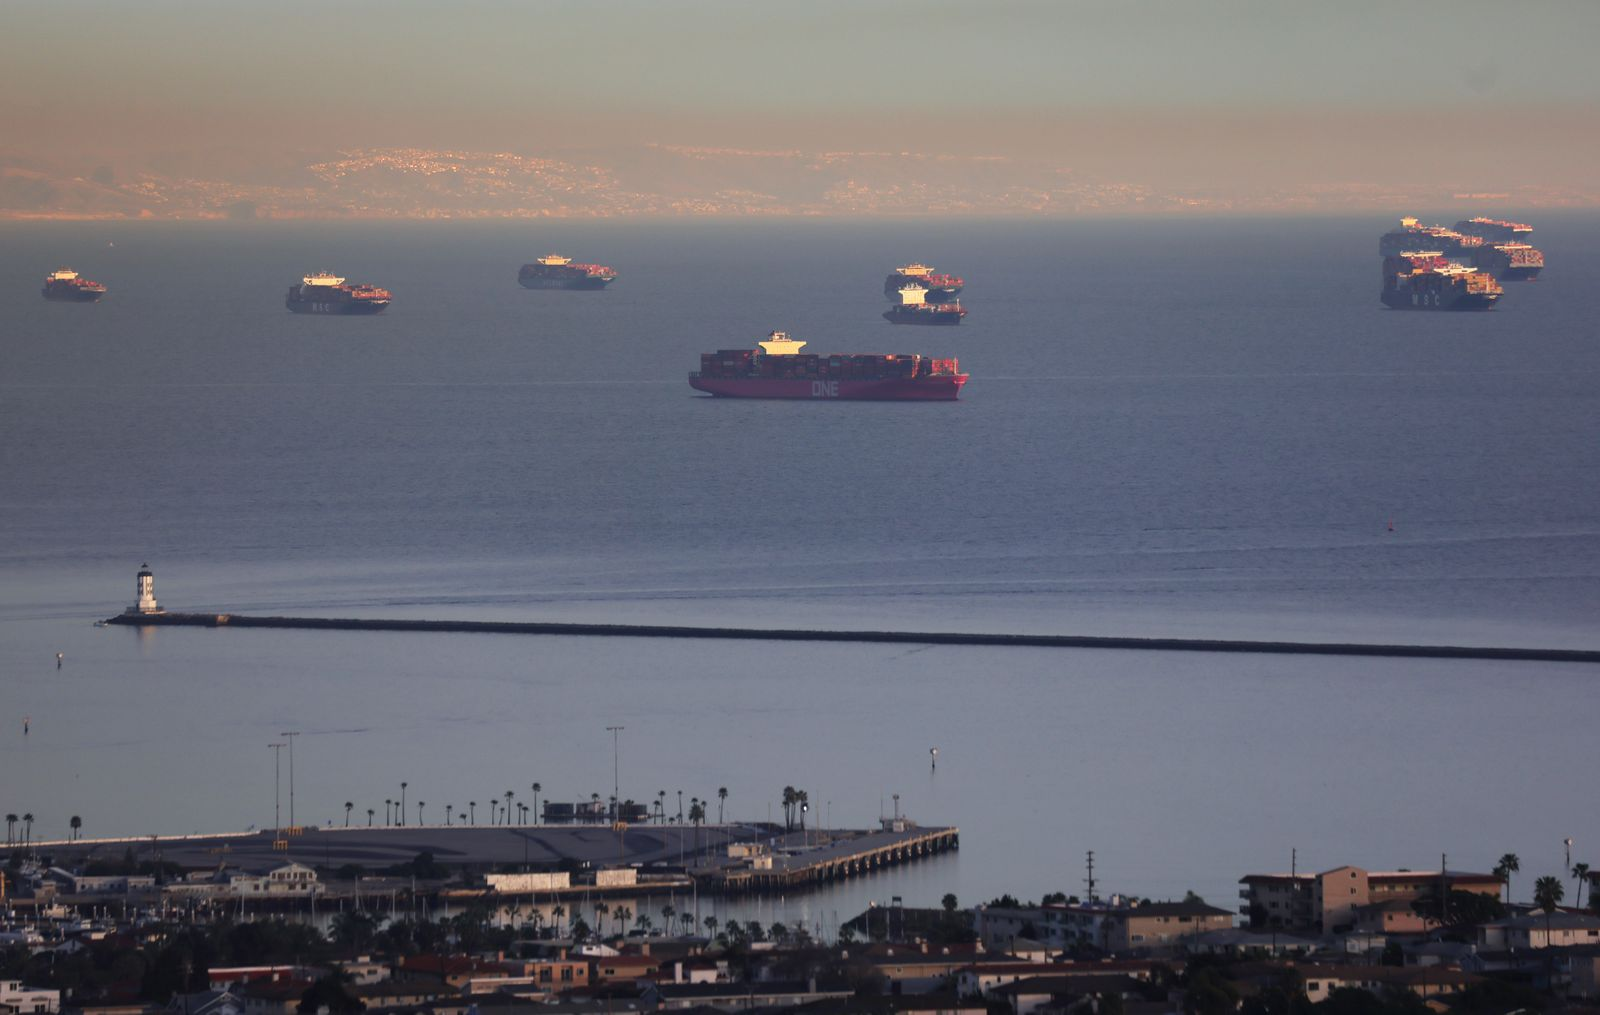 Consumers Buying Goods Online During The Covid Pandemic Results In Backup Of Tanker Ships At Long Beach Port